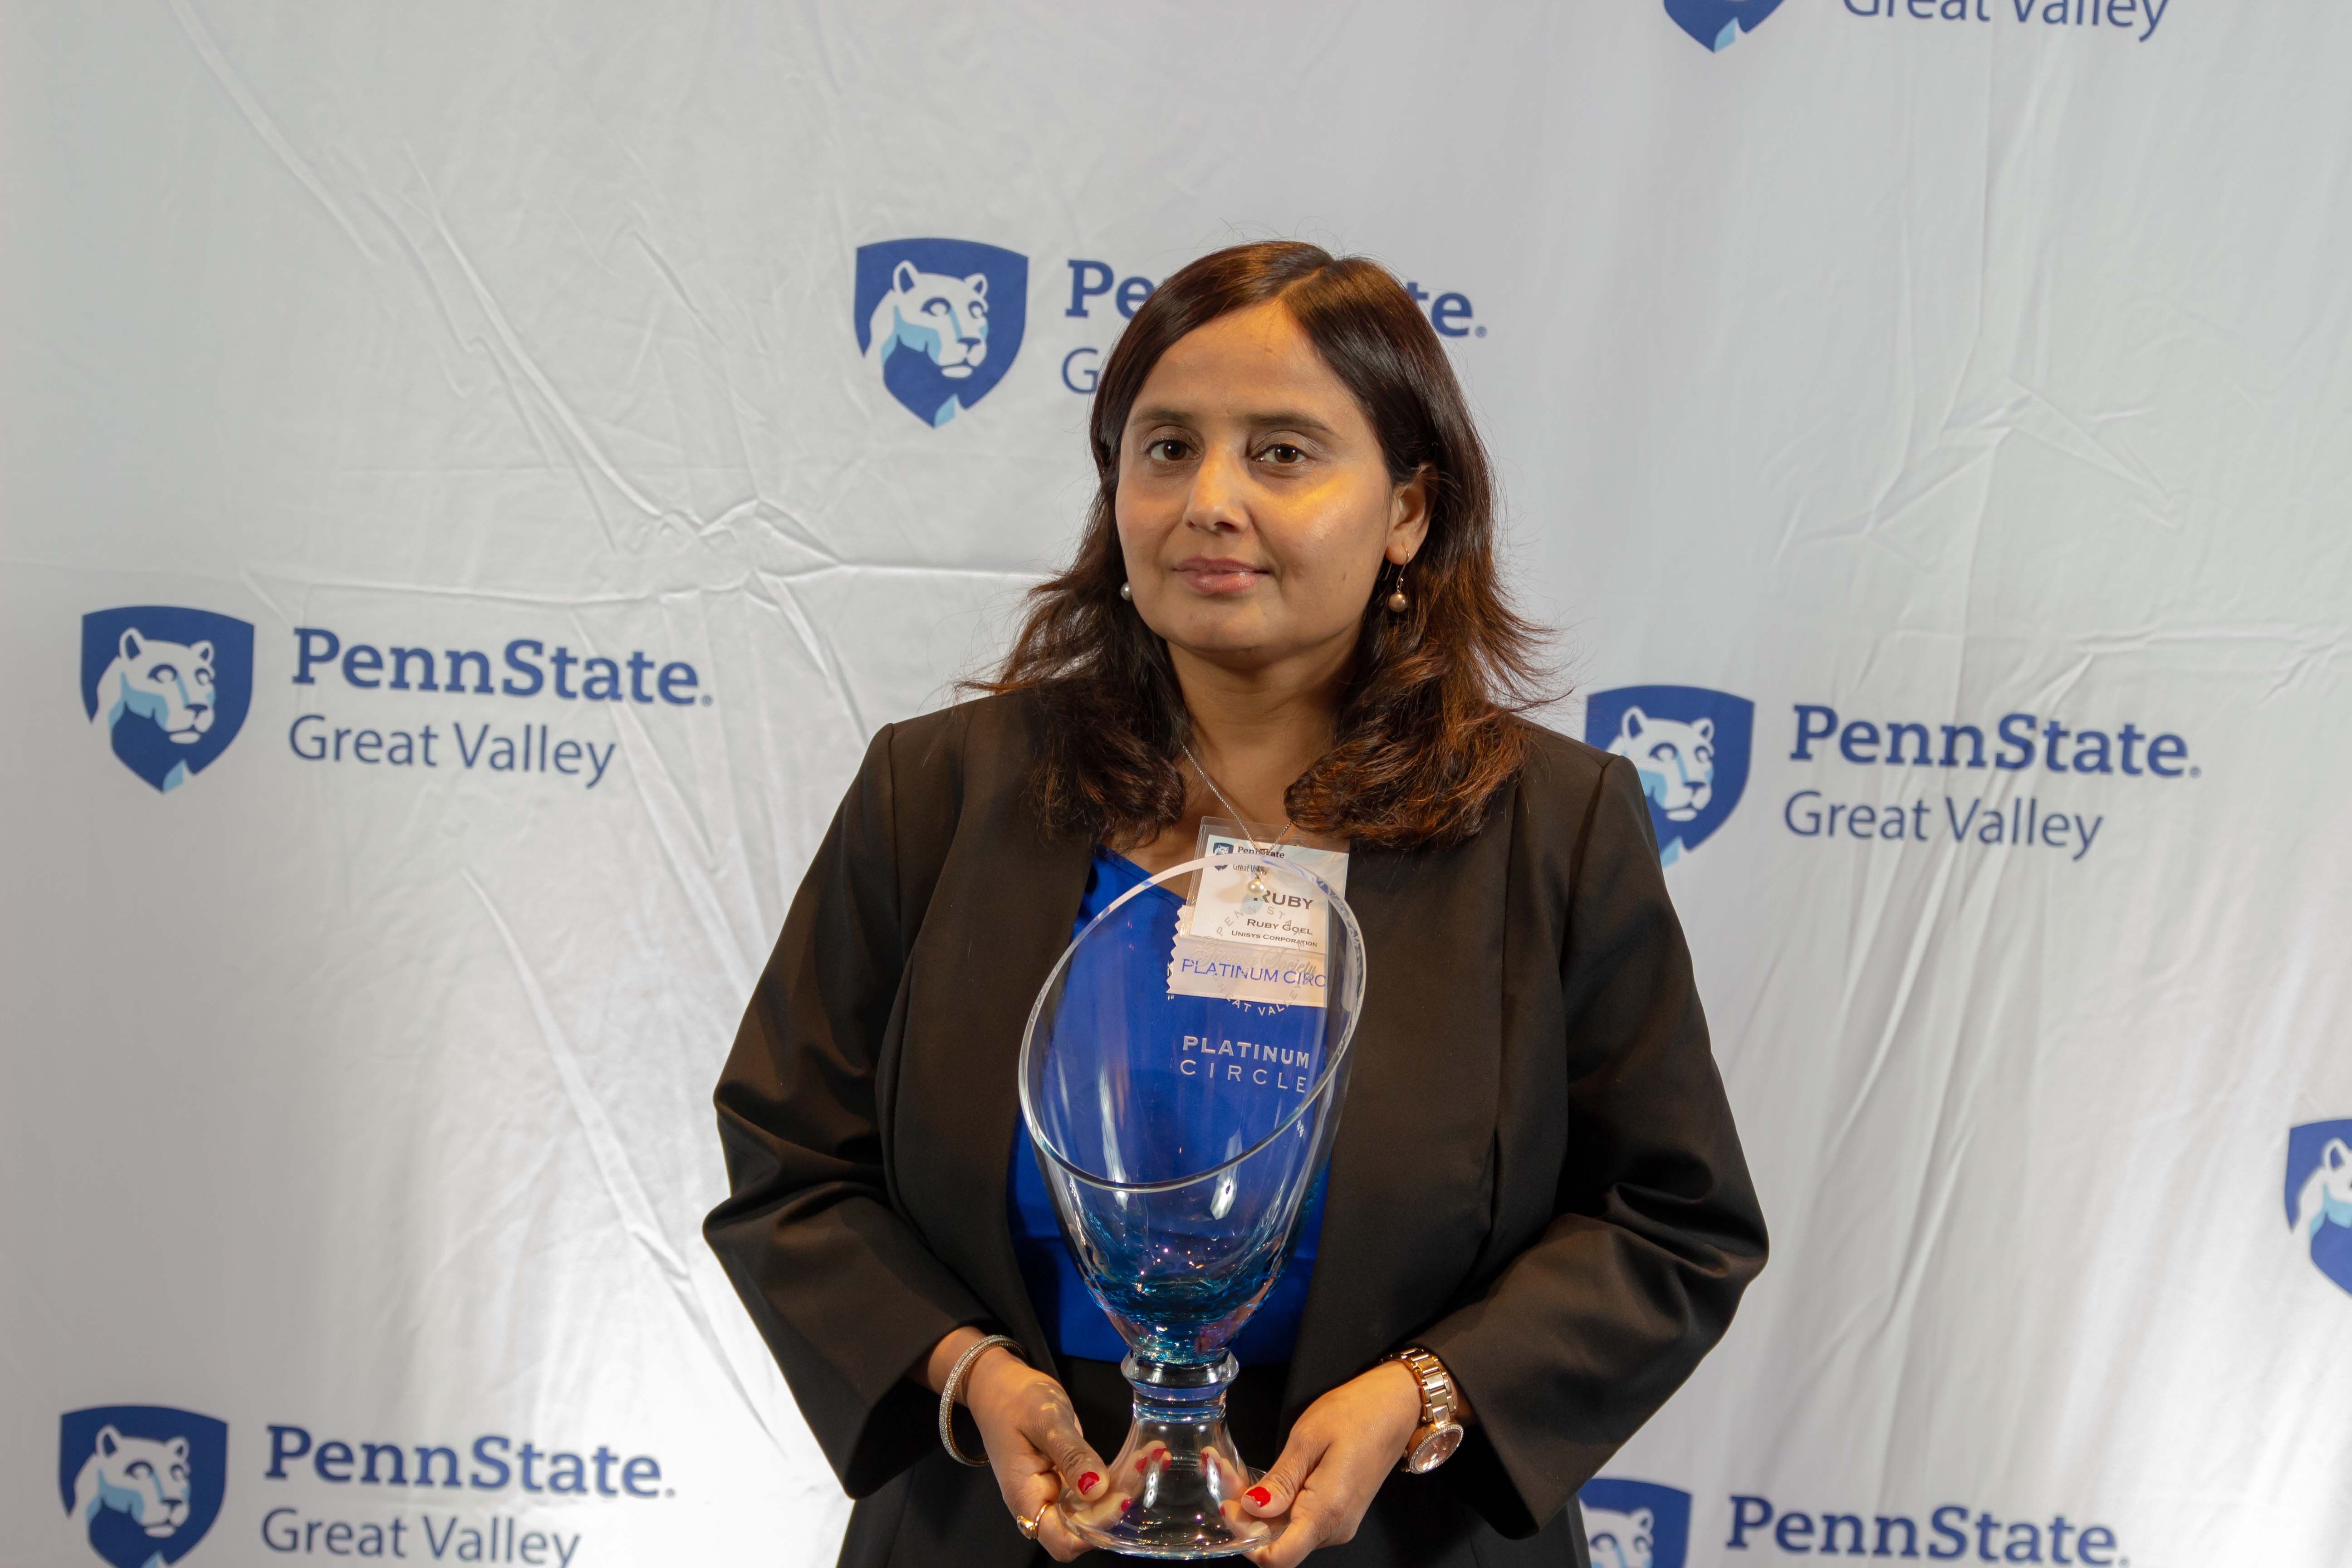 Unisys Corporation's Ruby Goel with a Platinum Circle vase